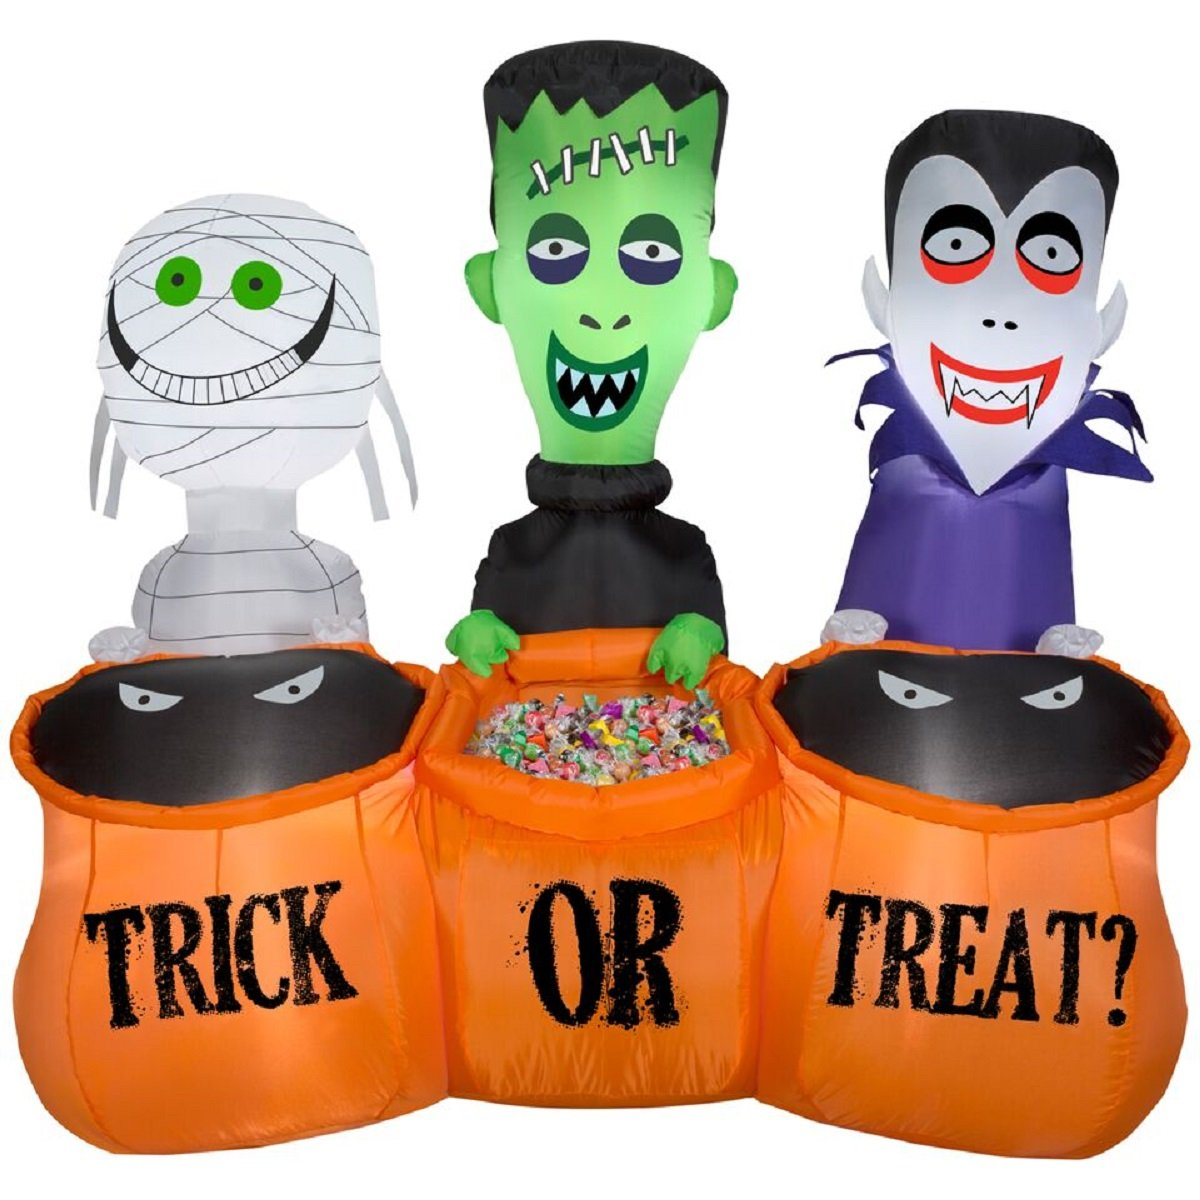 Gemmy Trick or Treaters Mummy, Frankenstein, and Vampire Trio Scene - Lighted Halloween Yard Decoration, 5-foot Wide and Over 4.5-foot Tall